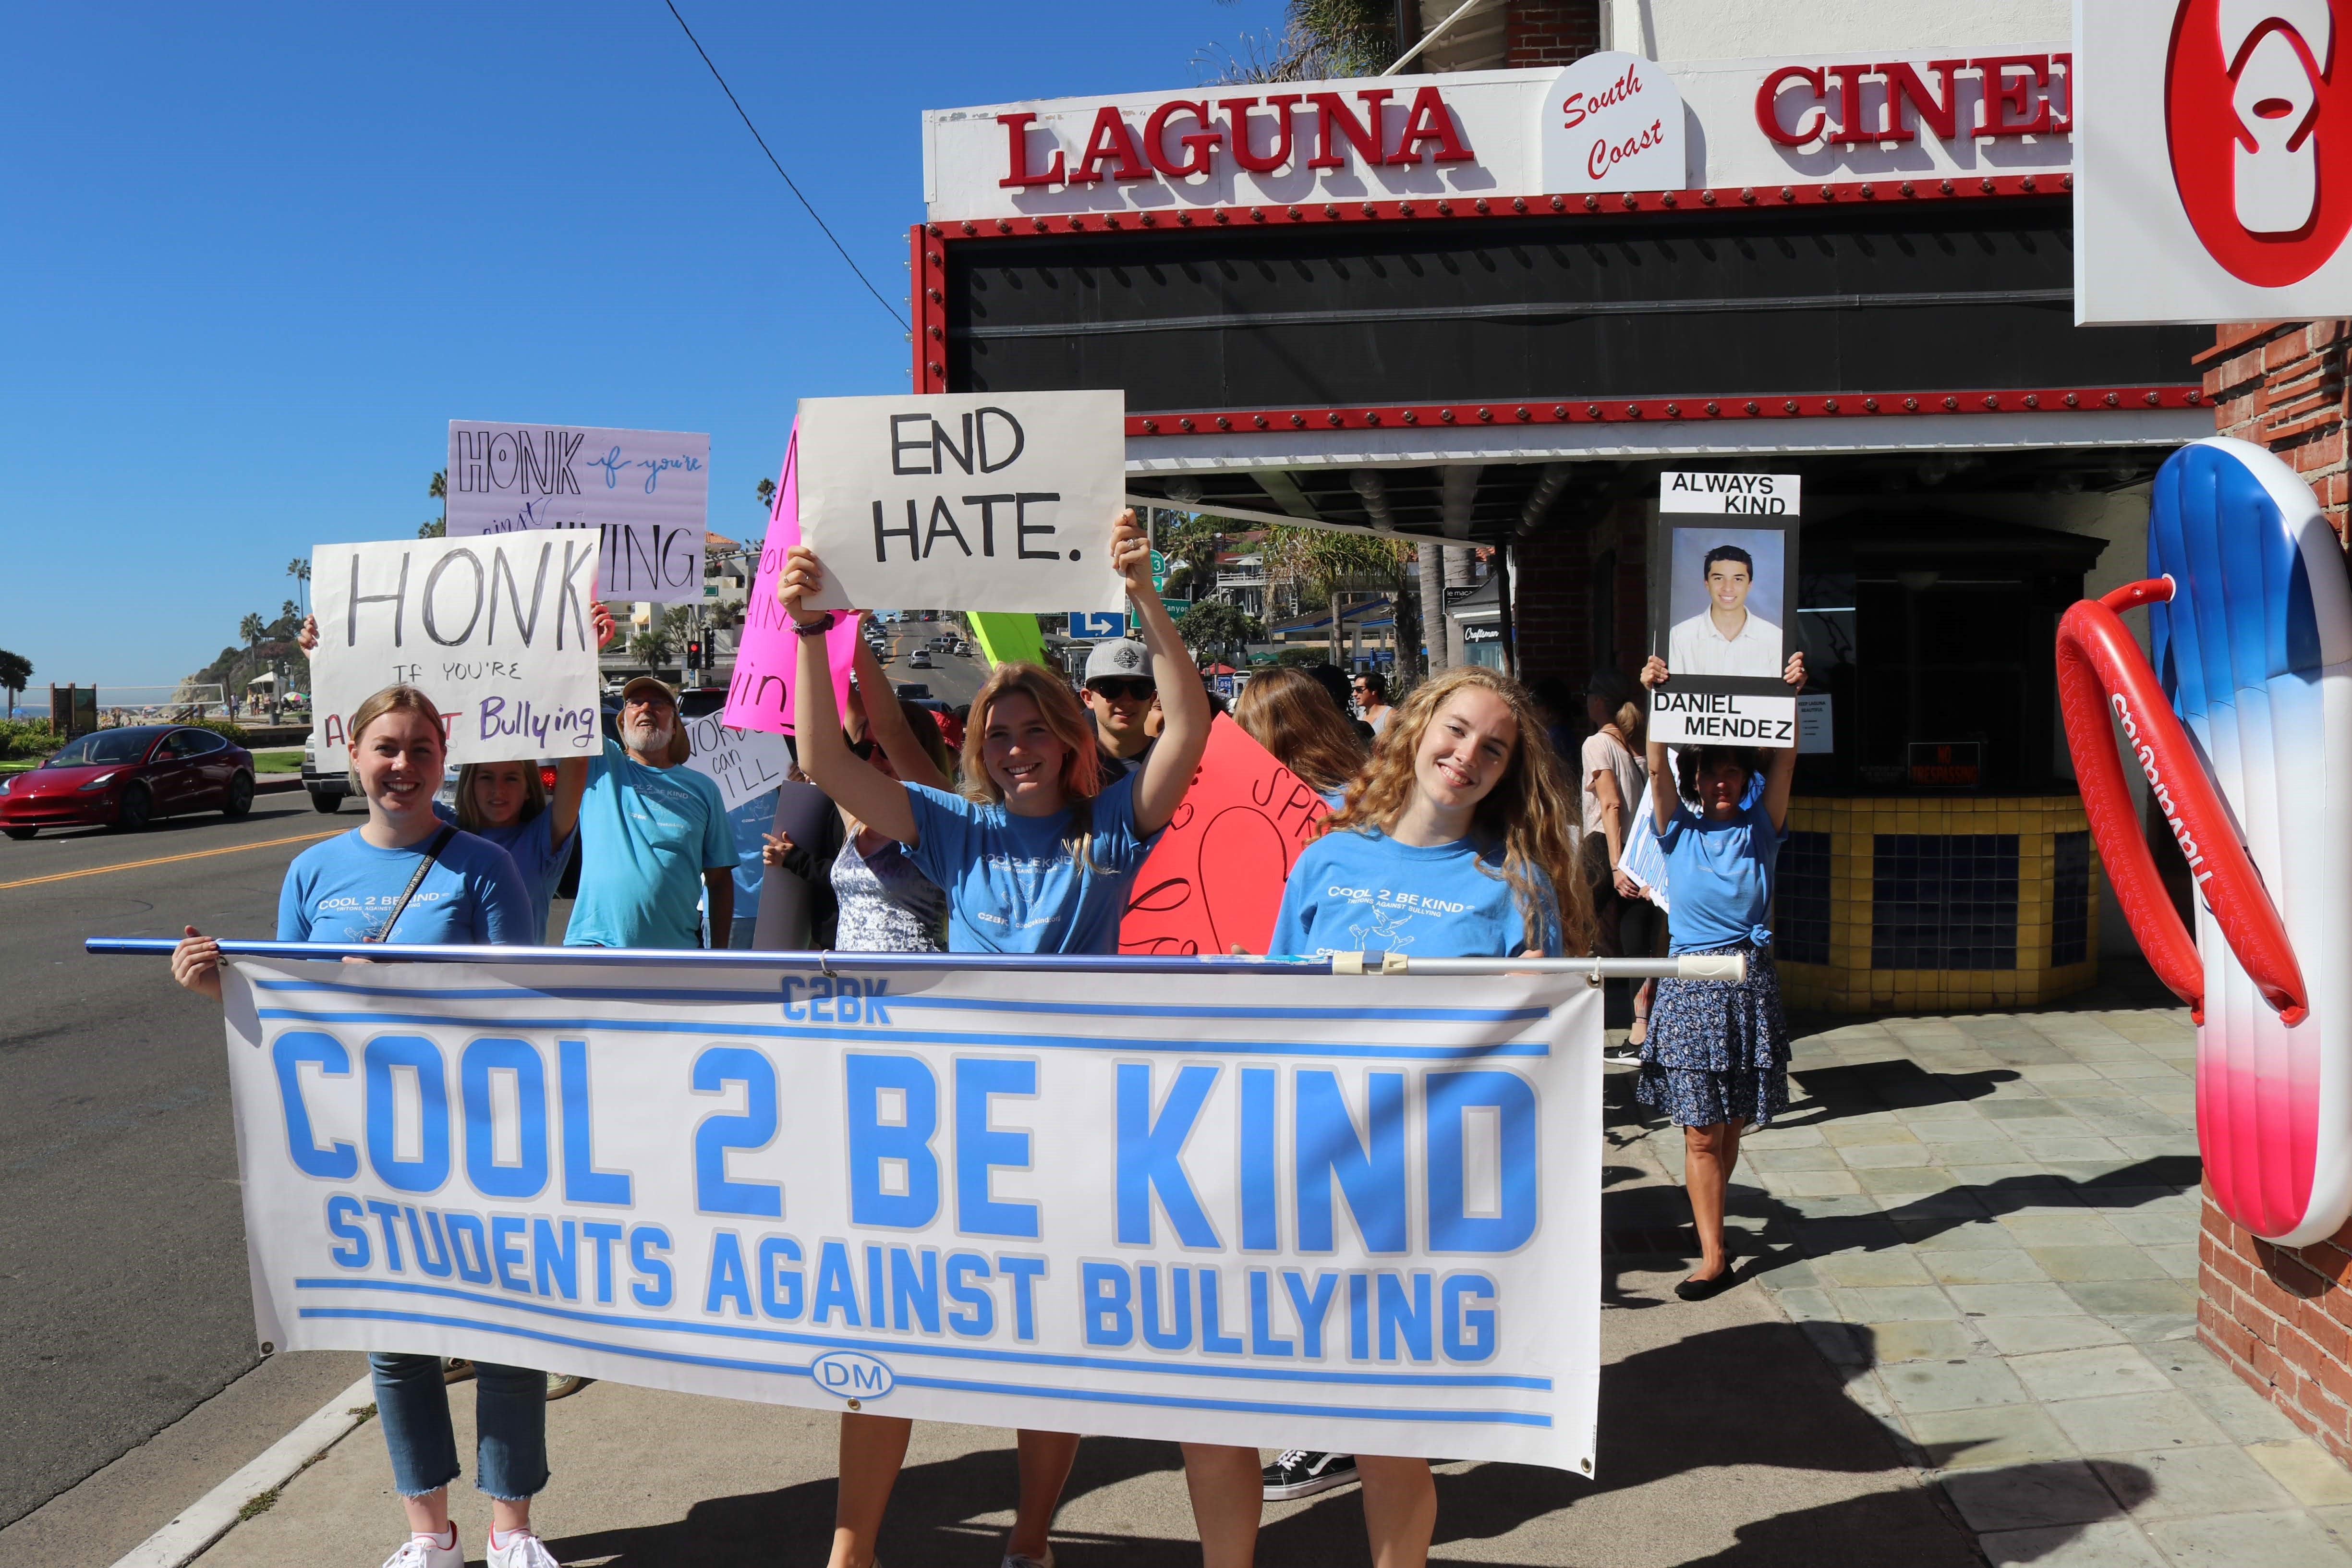 Cool 2 Be Kind organizers march last year in Laguna Beach. This year, the club will host the first People's March Against Bullying at 11 a.m. on Feb. 2 at the San Clemente Community Center lawn. Photo: Courtesy of Cool 2 Be Kind/Autumn Ferguson